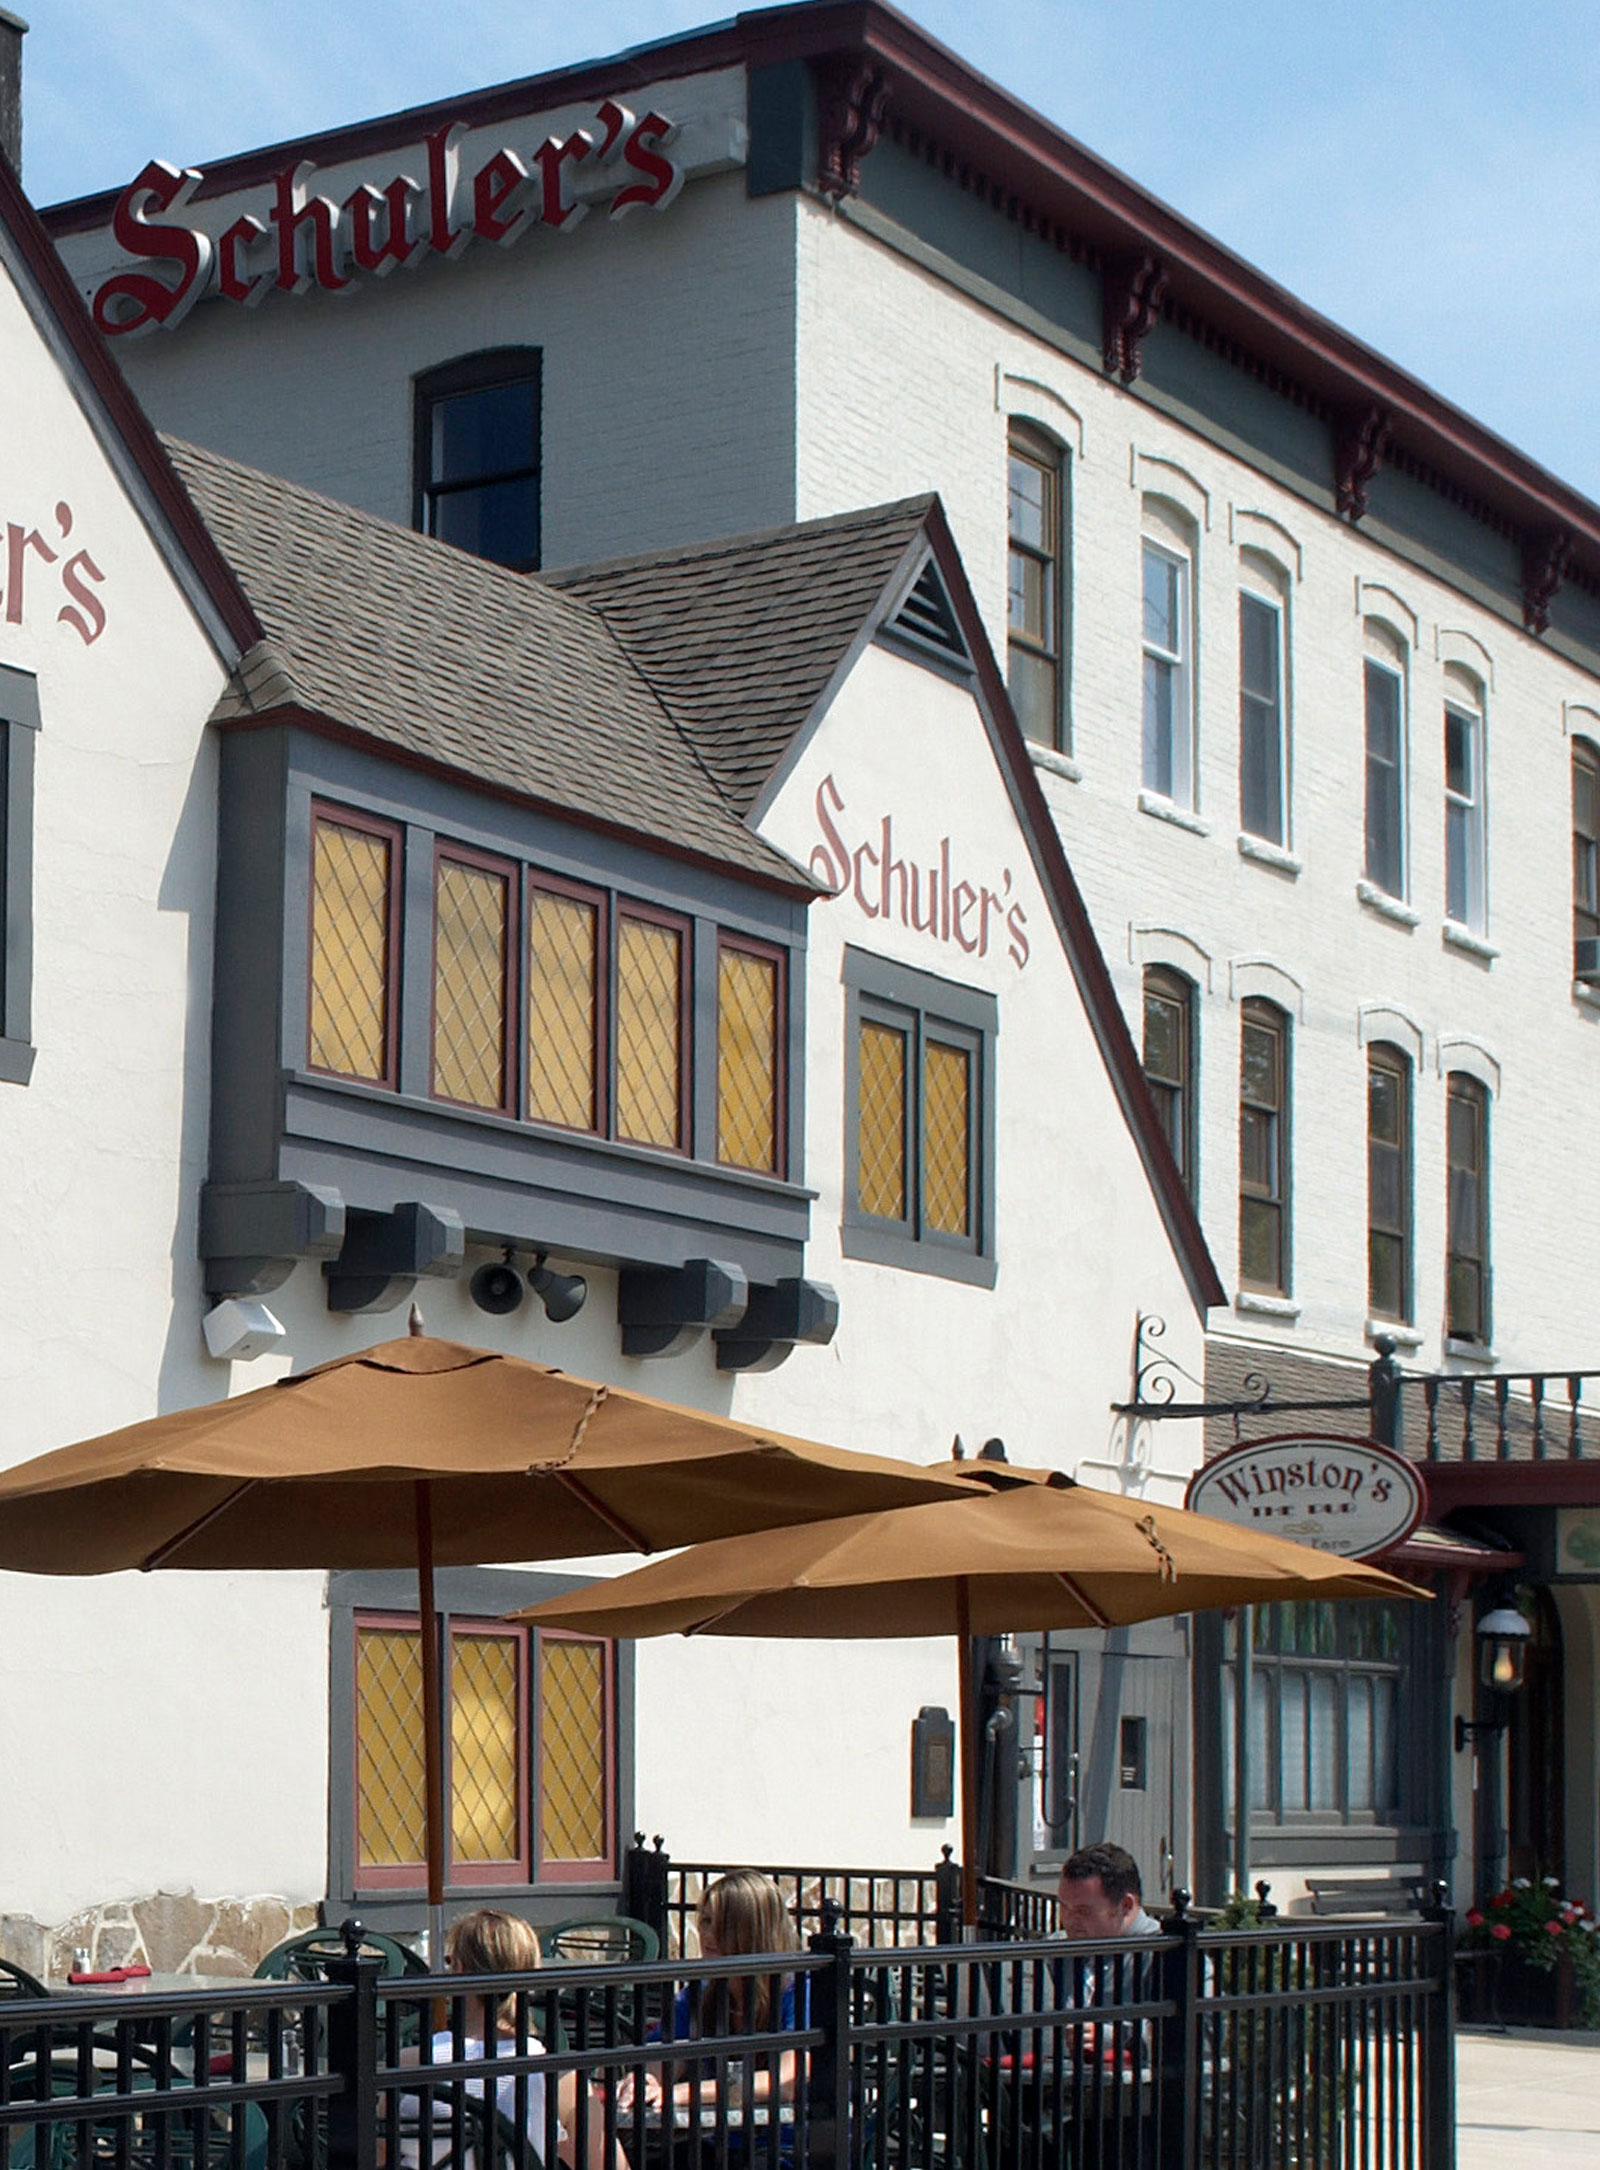 Schuler's Building and Patio